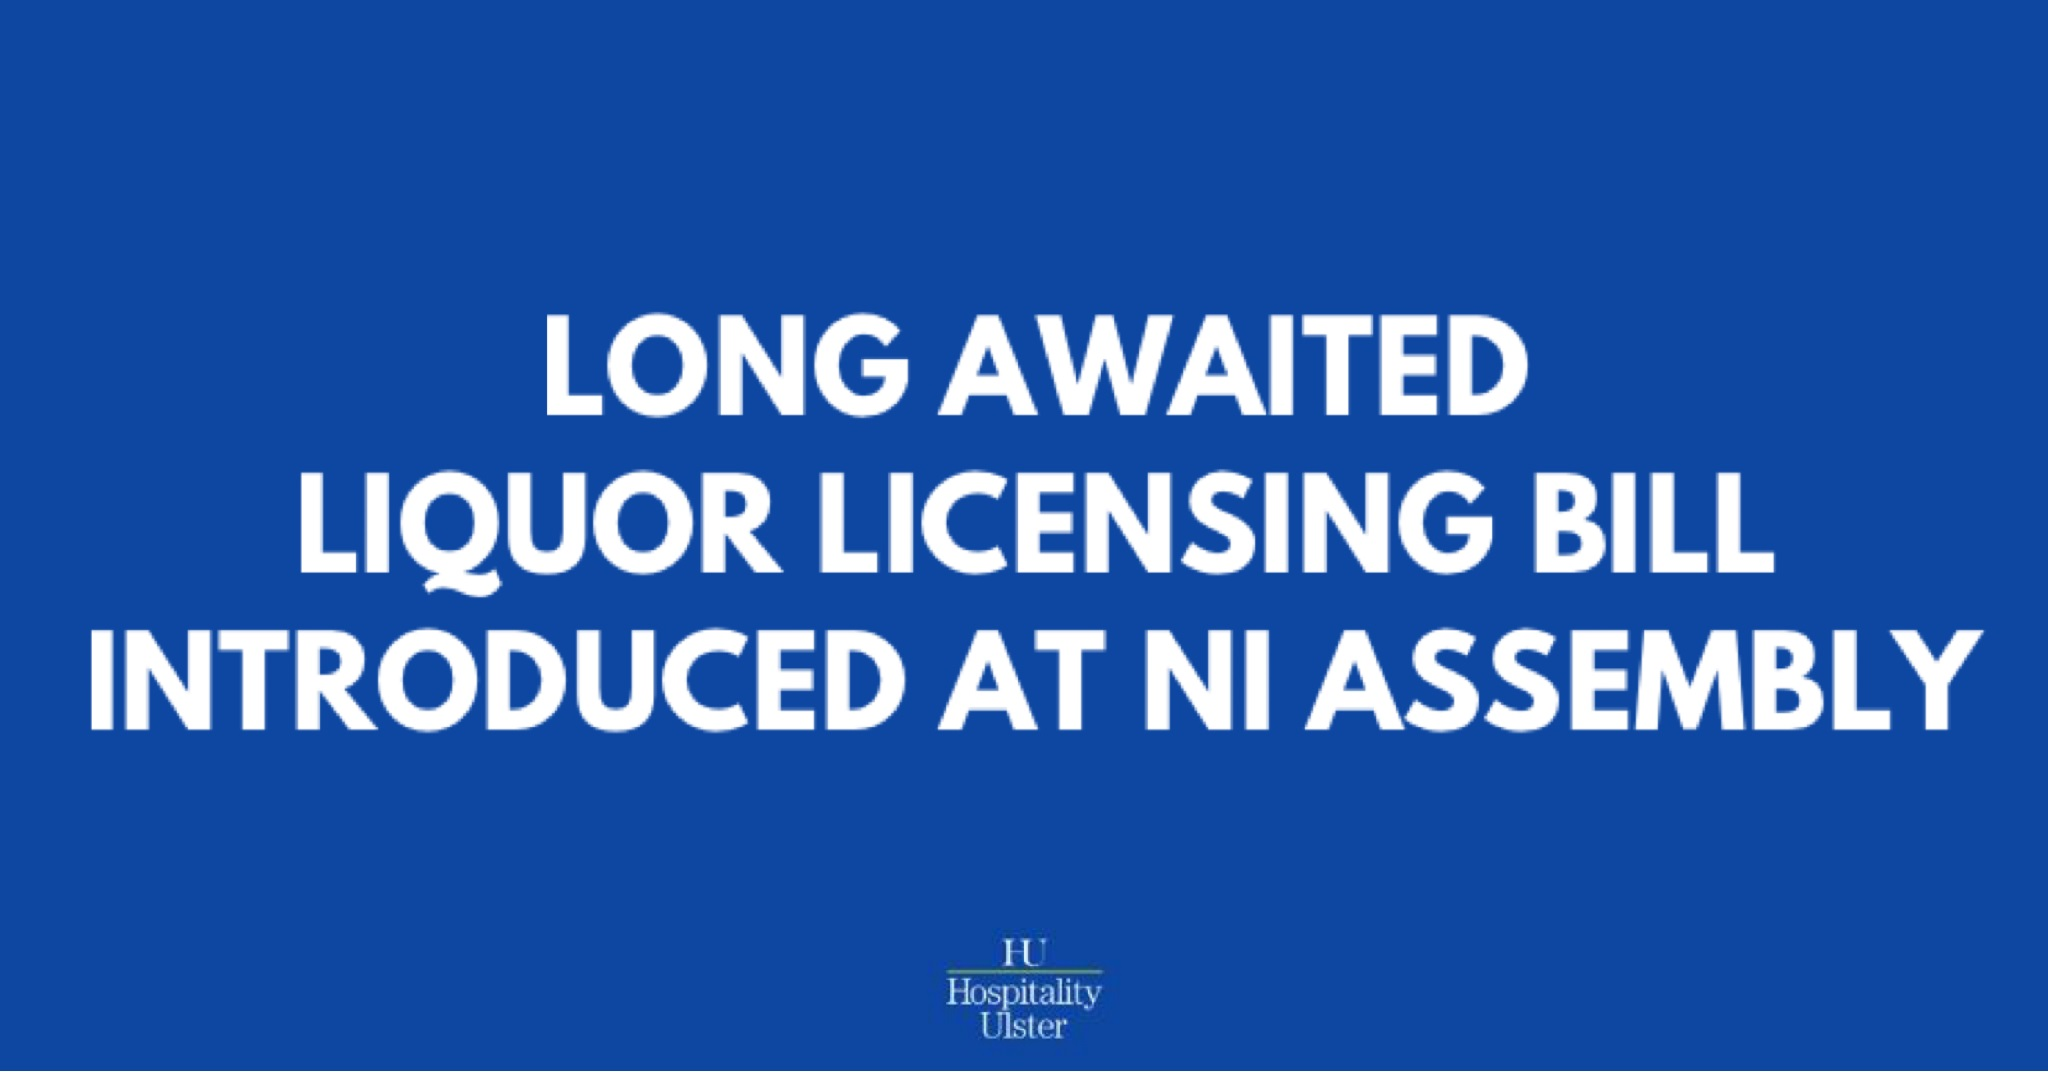 LONG AWAITED LIQUOR LICENSING BILL INTRODUCED AT NI ASSEMBLY